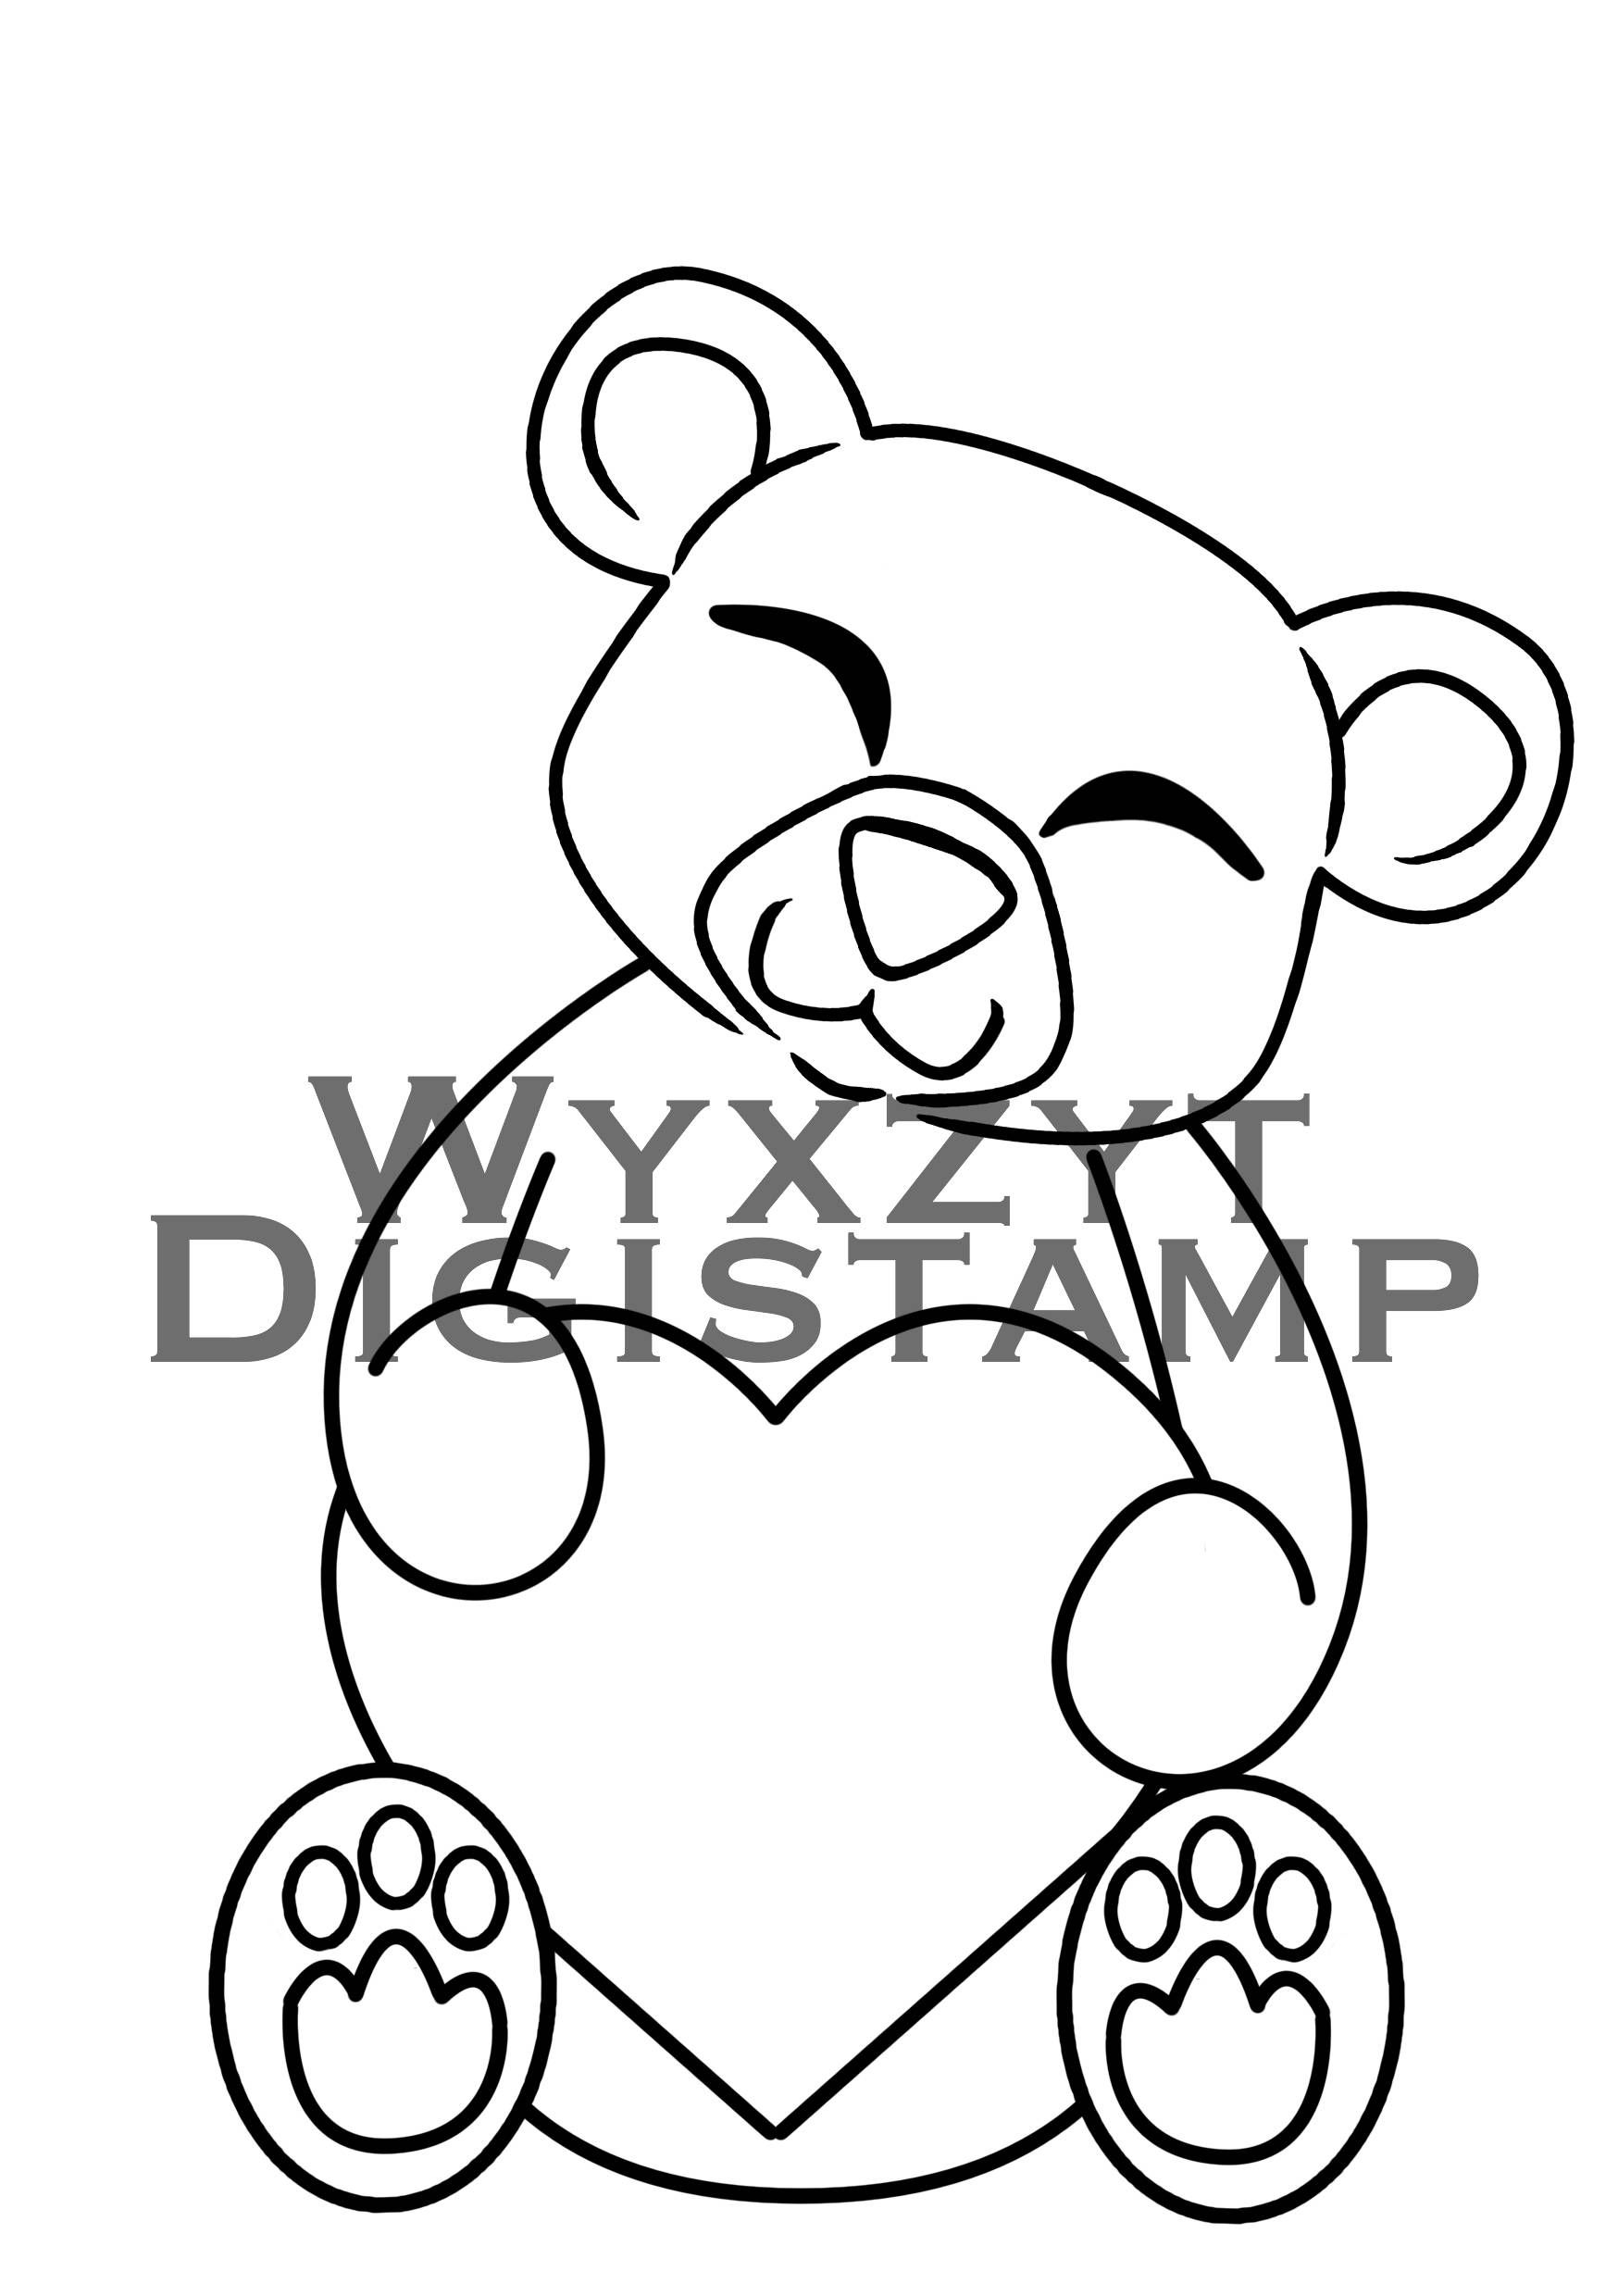 1748x2480 Cute Teddy Bear Holding Heart Digital Stamp Instant Download